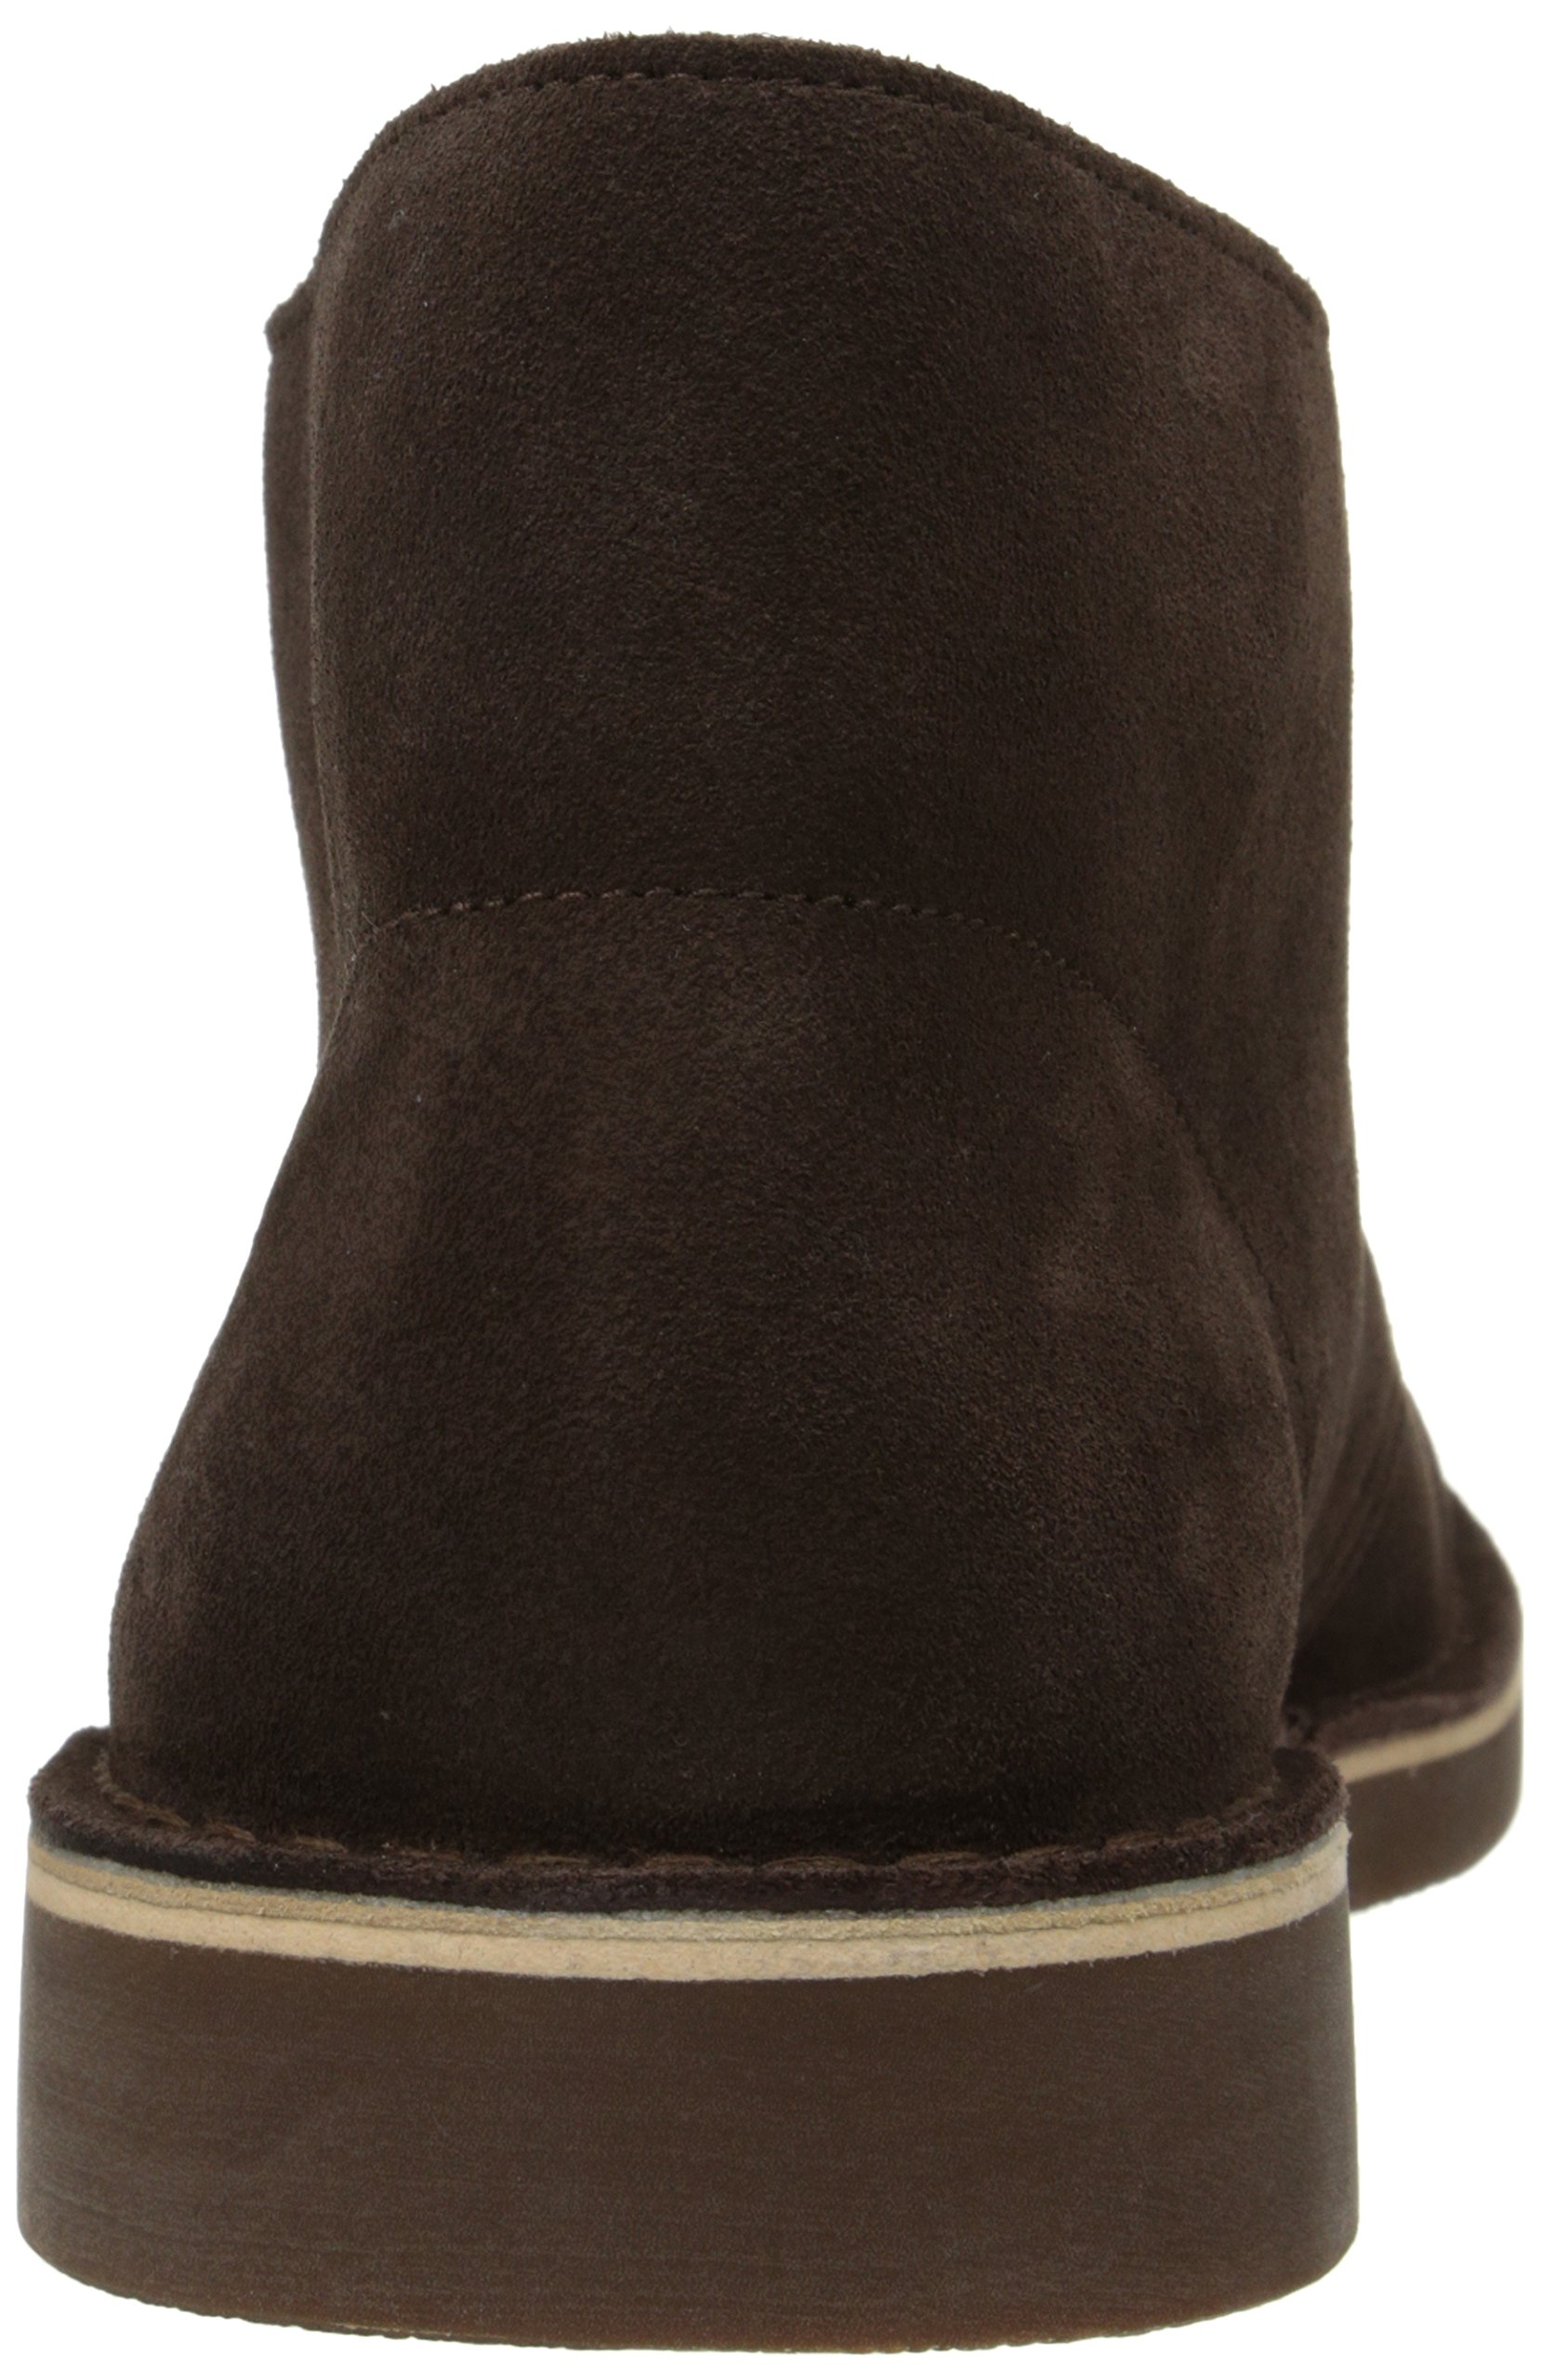 Clarks Men's Bushacre 2 Chukka Boot,Brown Suede,13 M US by CLARKS (Image #2)